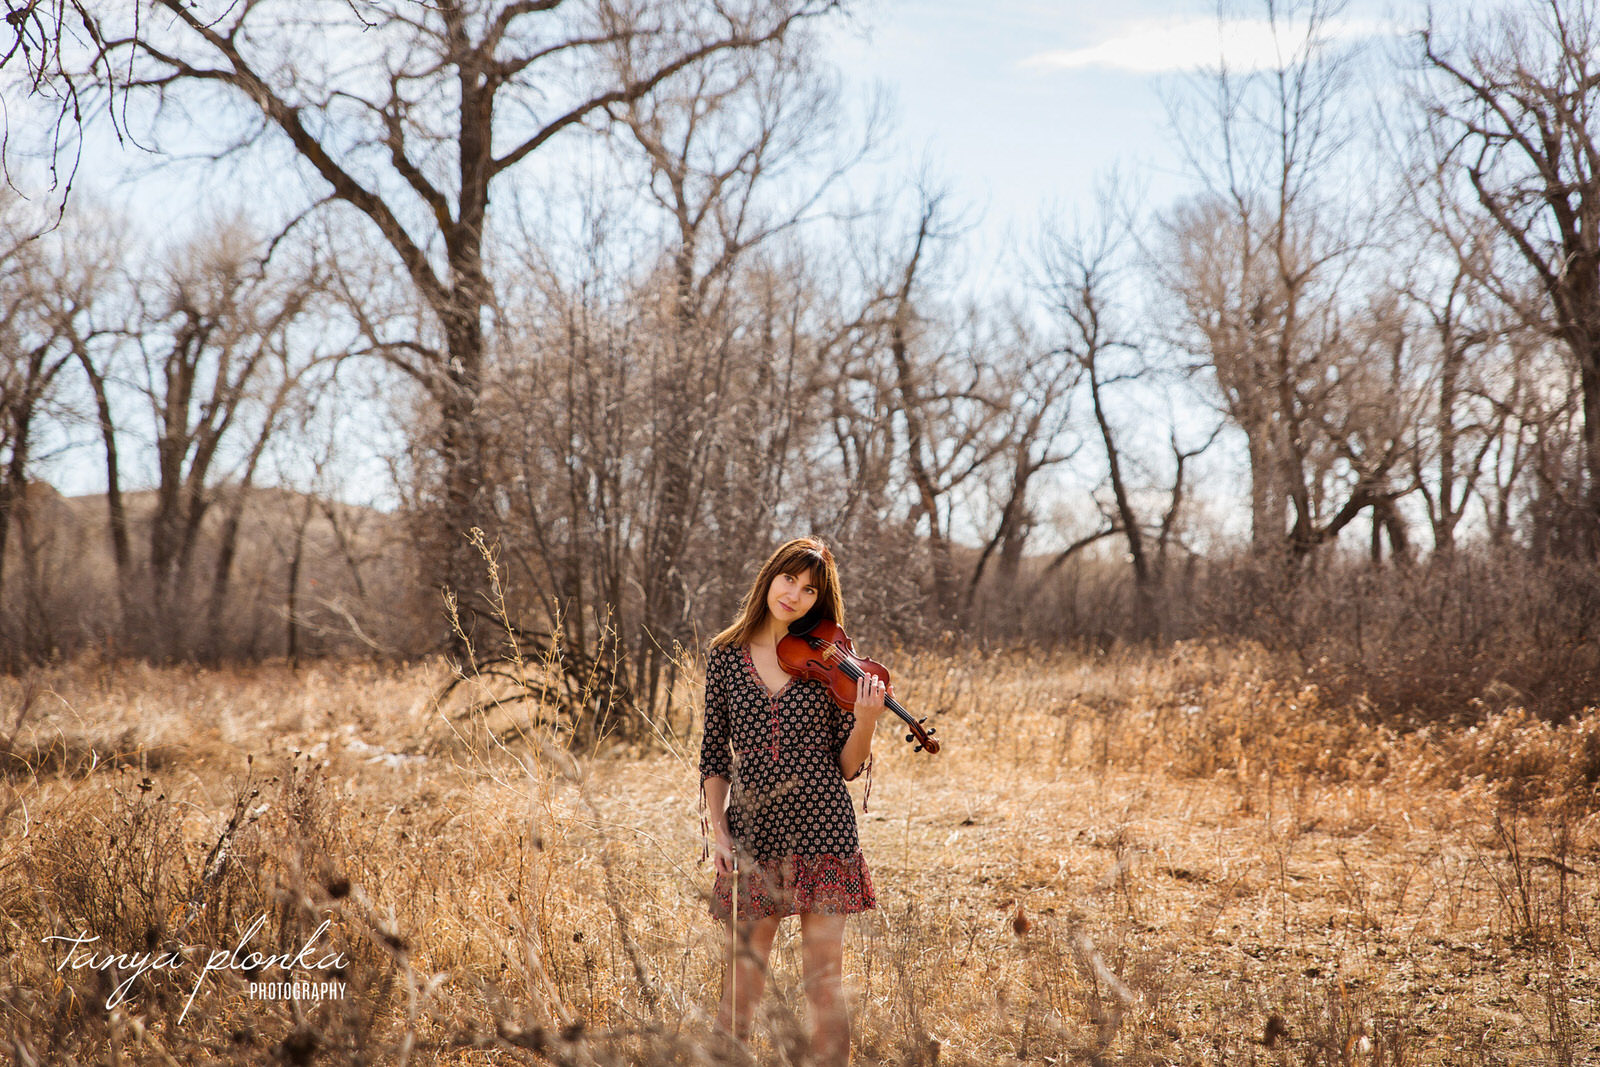 woman holding violin stand in Indian Battle Park in the early spring